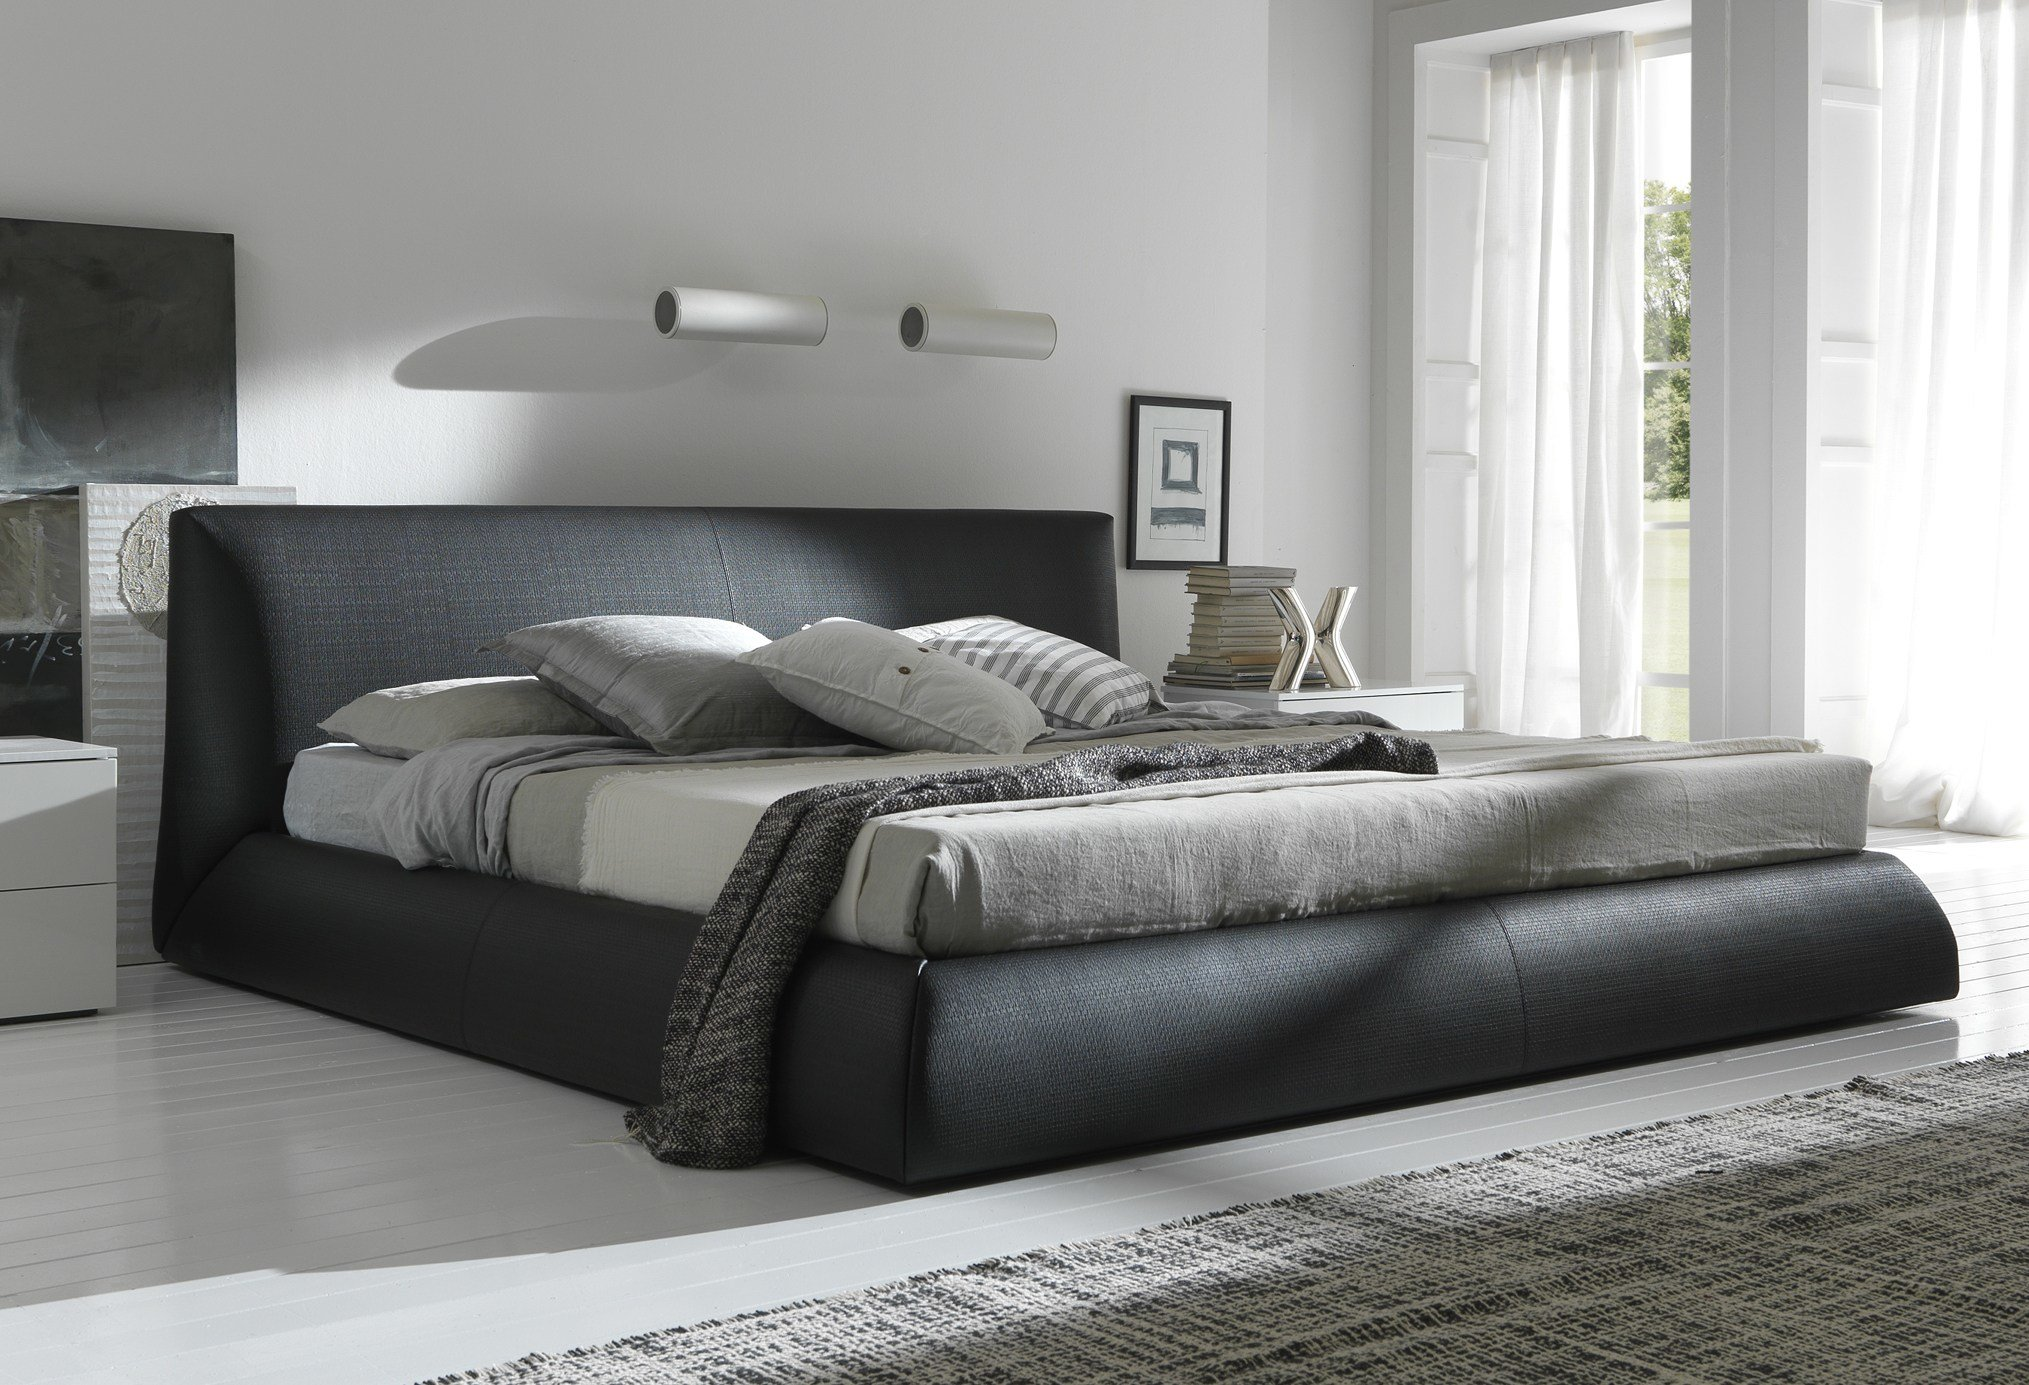 Best Bedroom Futuristic Decorating King Size Beds For Sale With Pictures